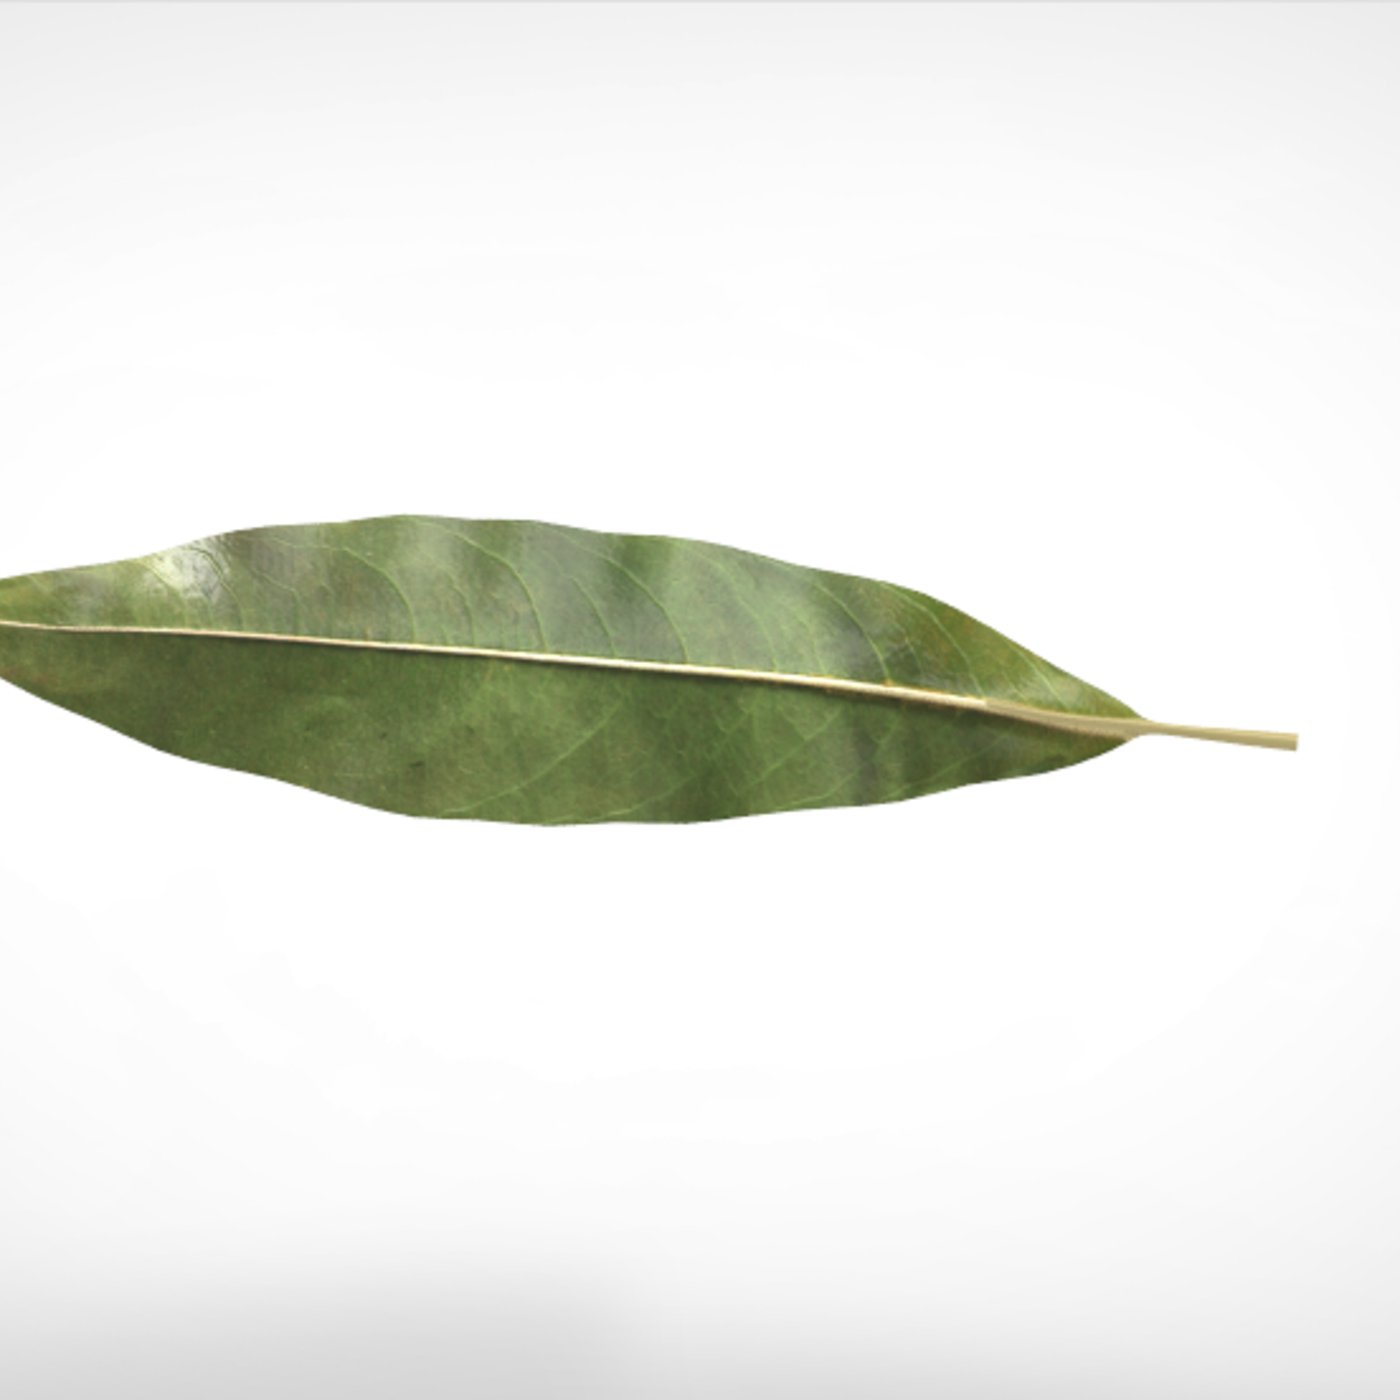 19 Model of Leaves - Very high quality